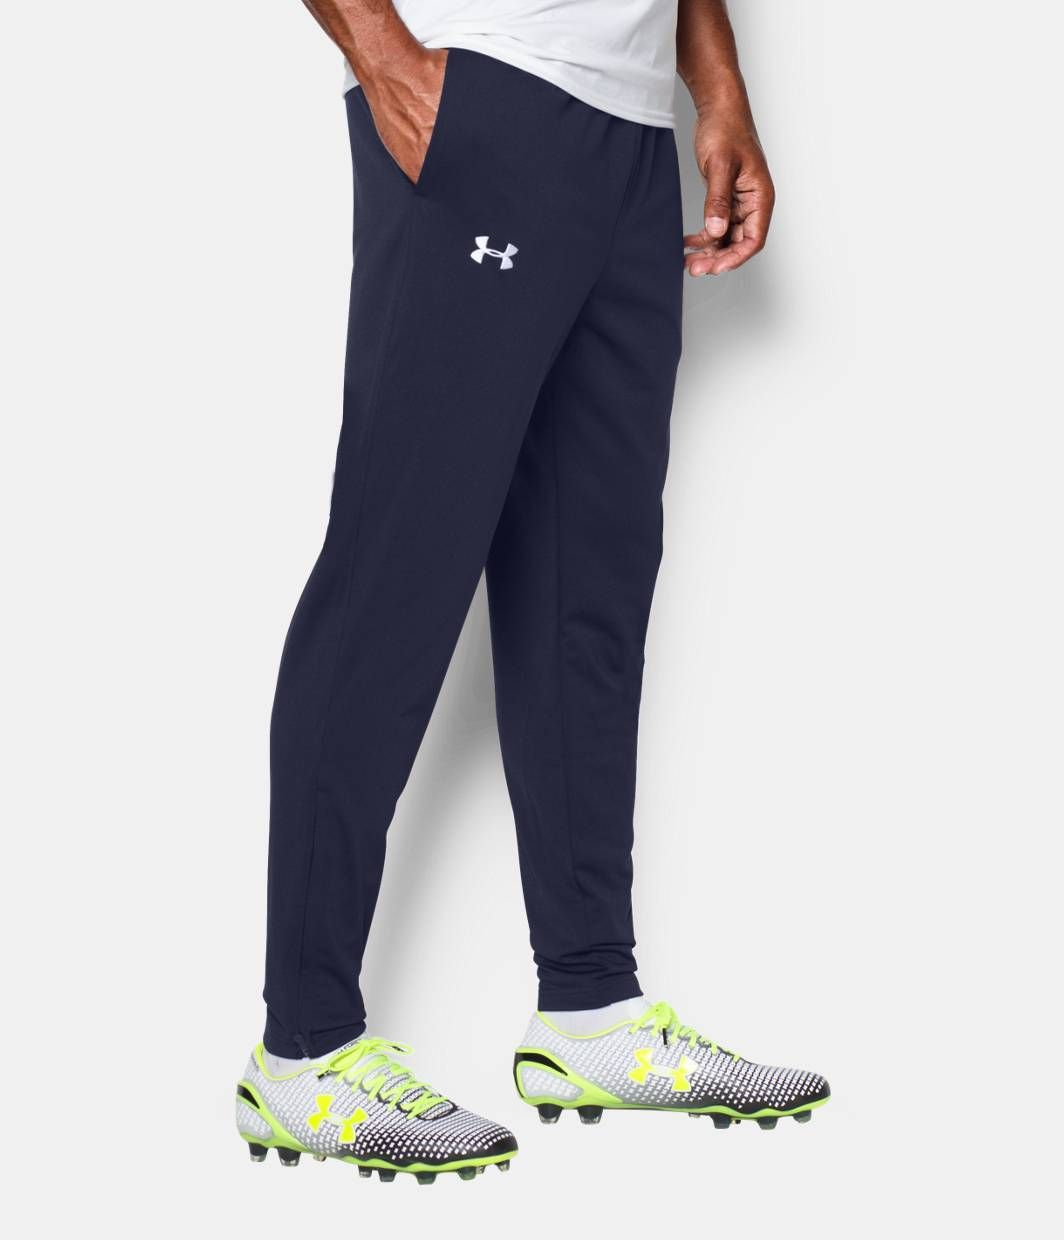 a62b563db037 Shop Under Armour for Men s UA Futbolista Soccer Track Pants in our Mens  Bottoms department. Free shipping is available in CA.